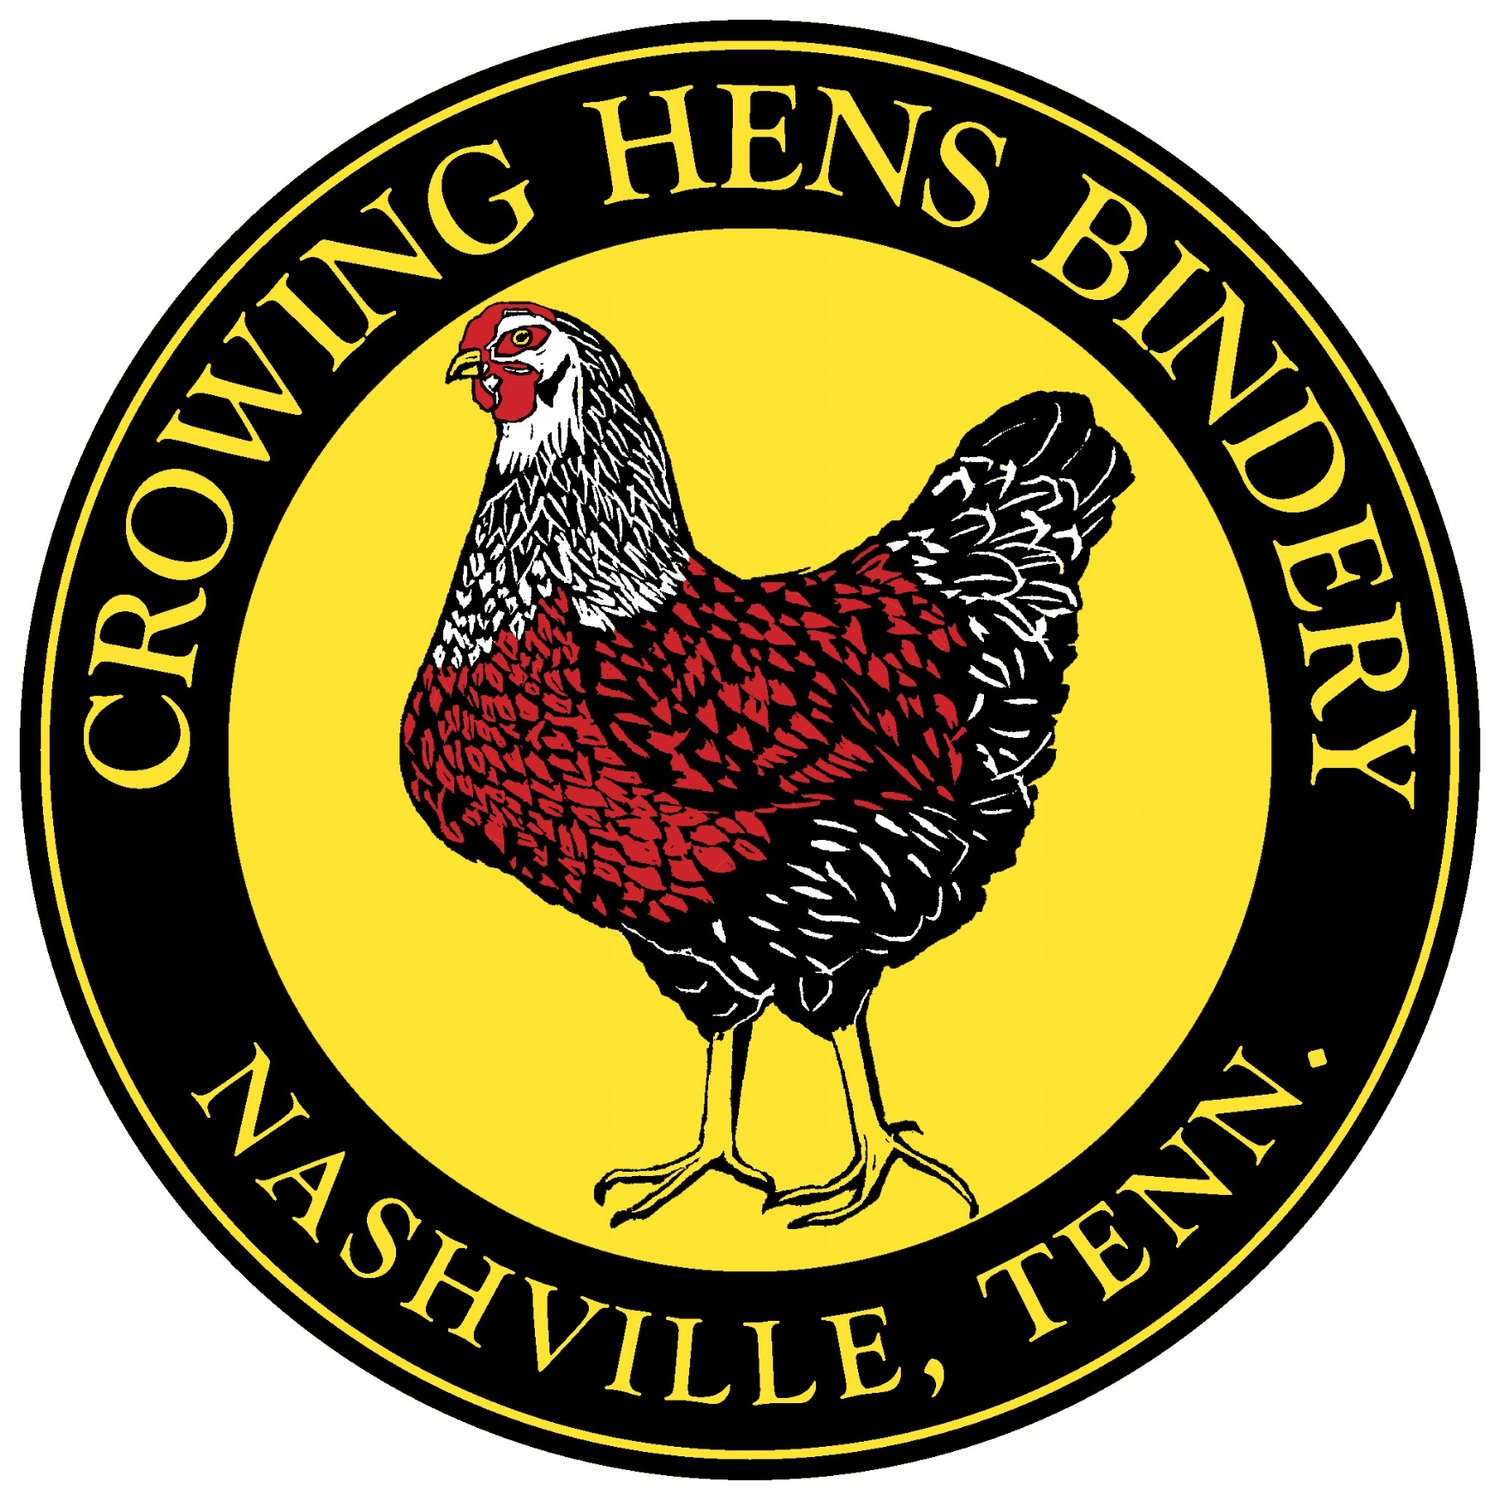 Crowing Hens Bindery